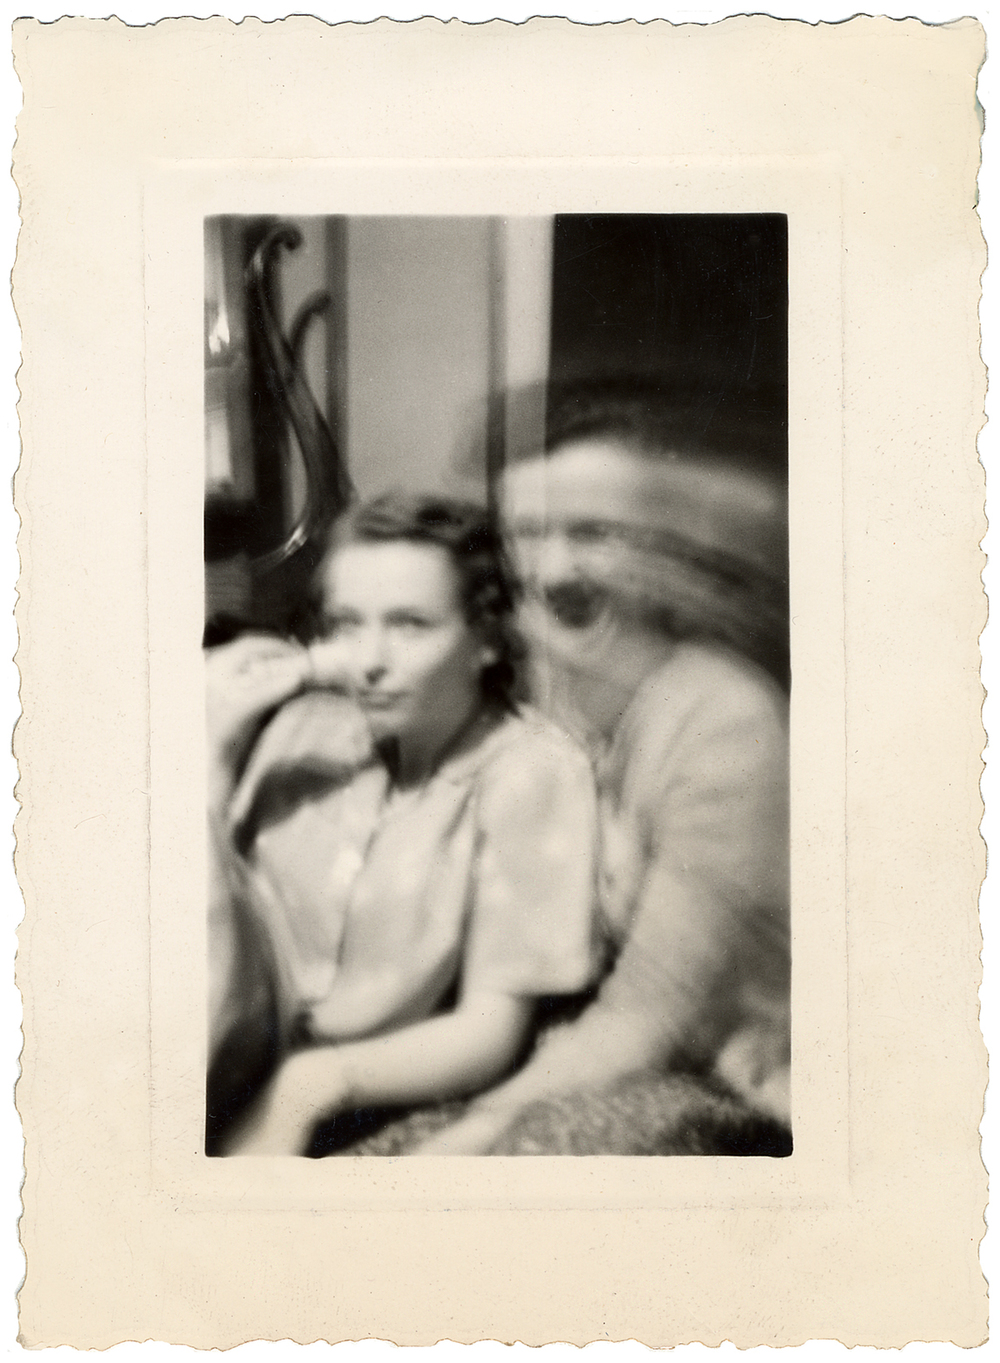 Accidental double-exposure, 1940s.